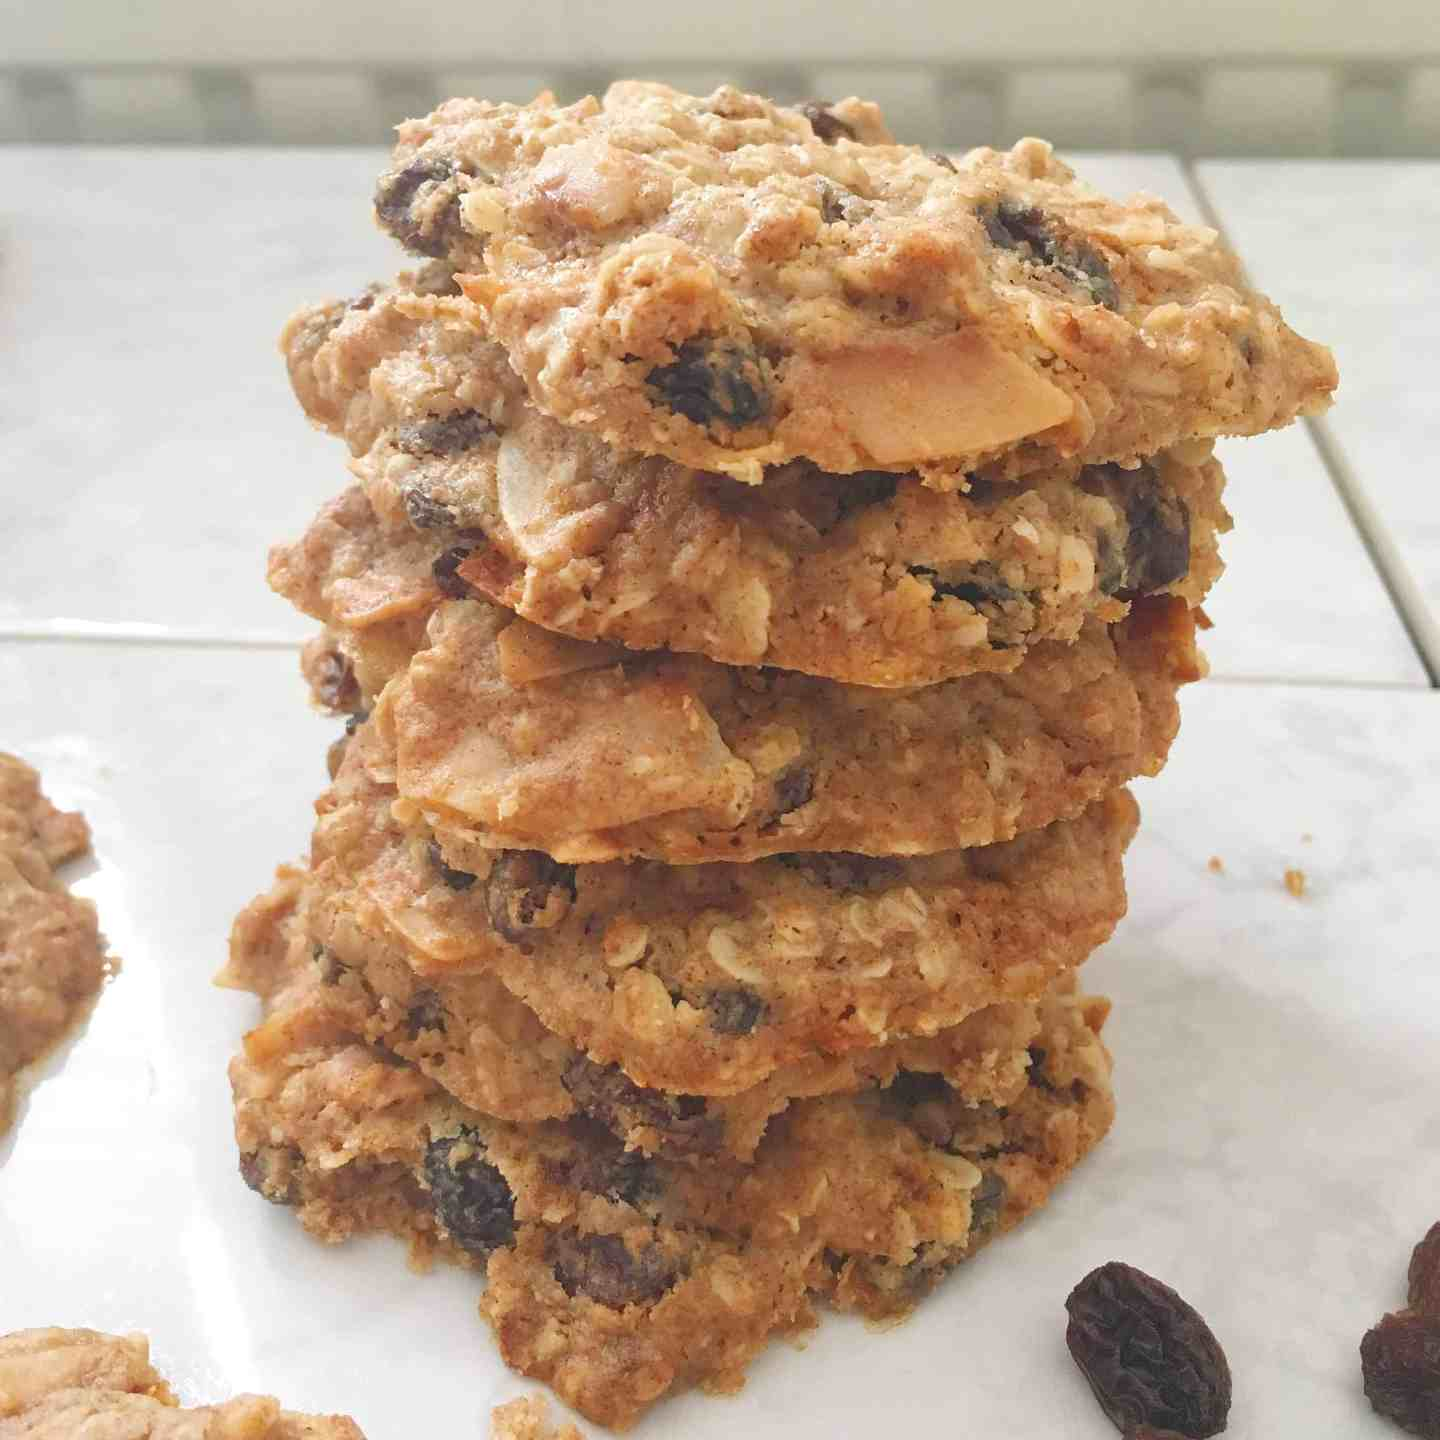 Spiced Raisin Oat Vegan Biscuit